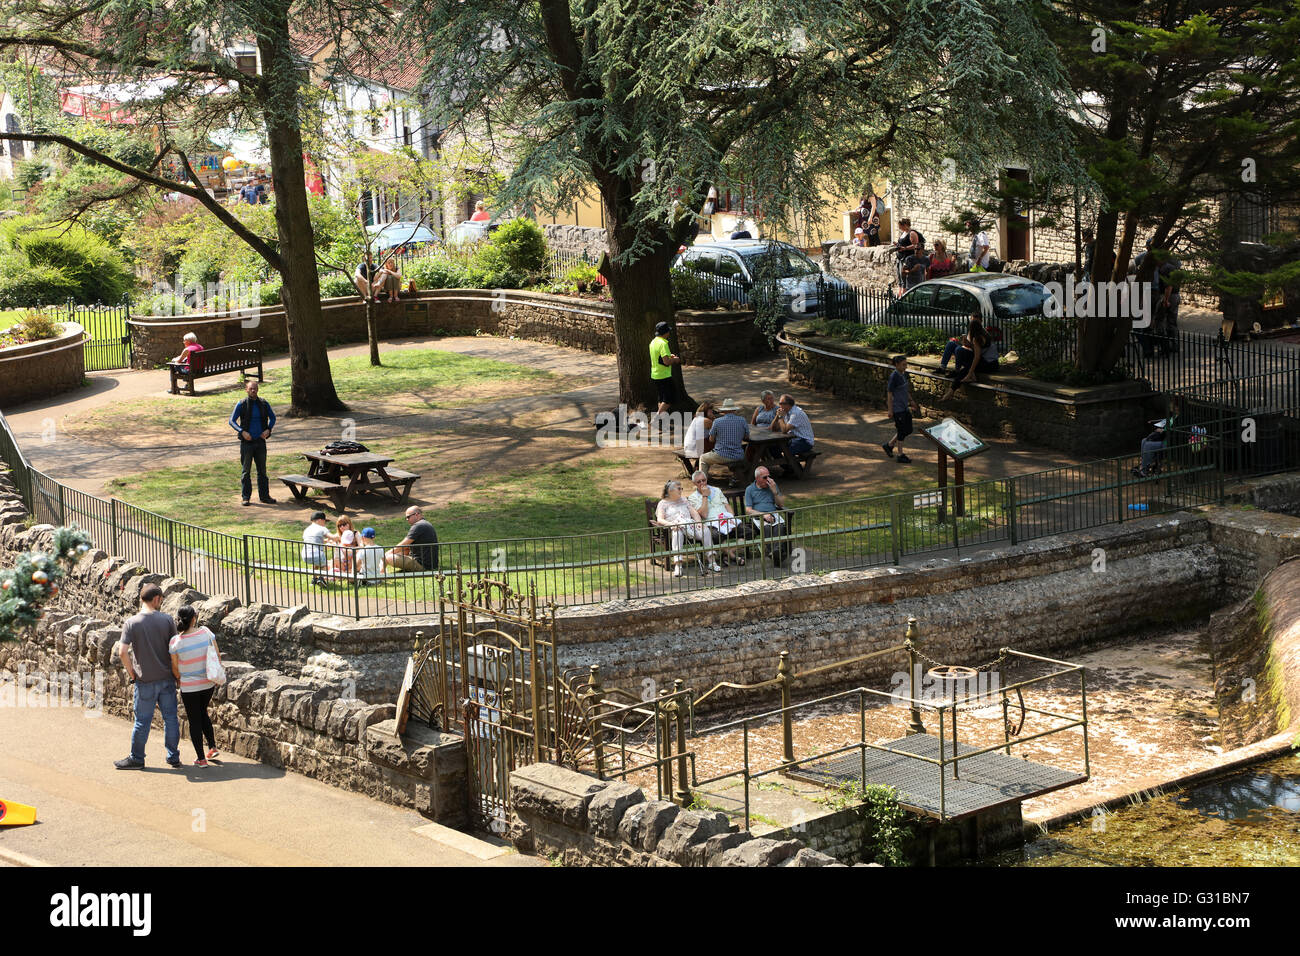 Place to relax stock photos place to relax stock images - Cheddar gorge hotels with swimming pools ...